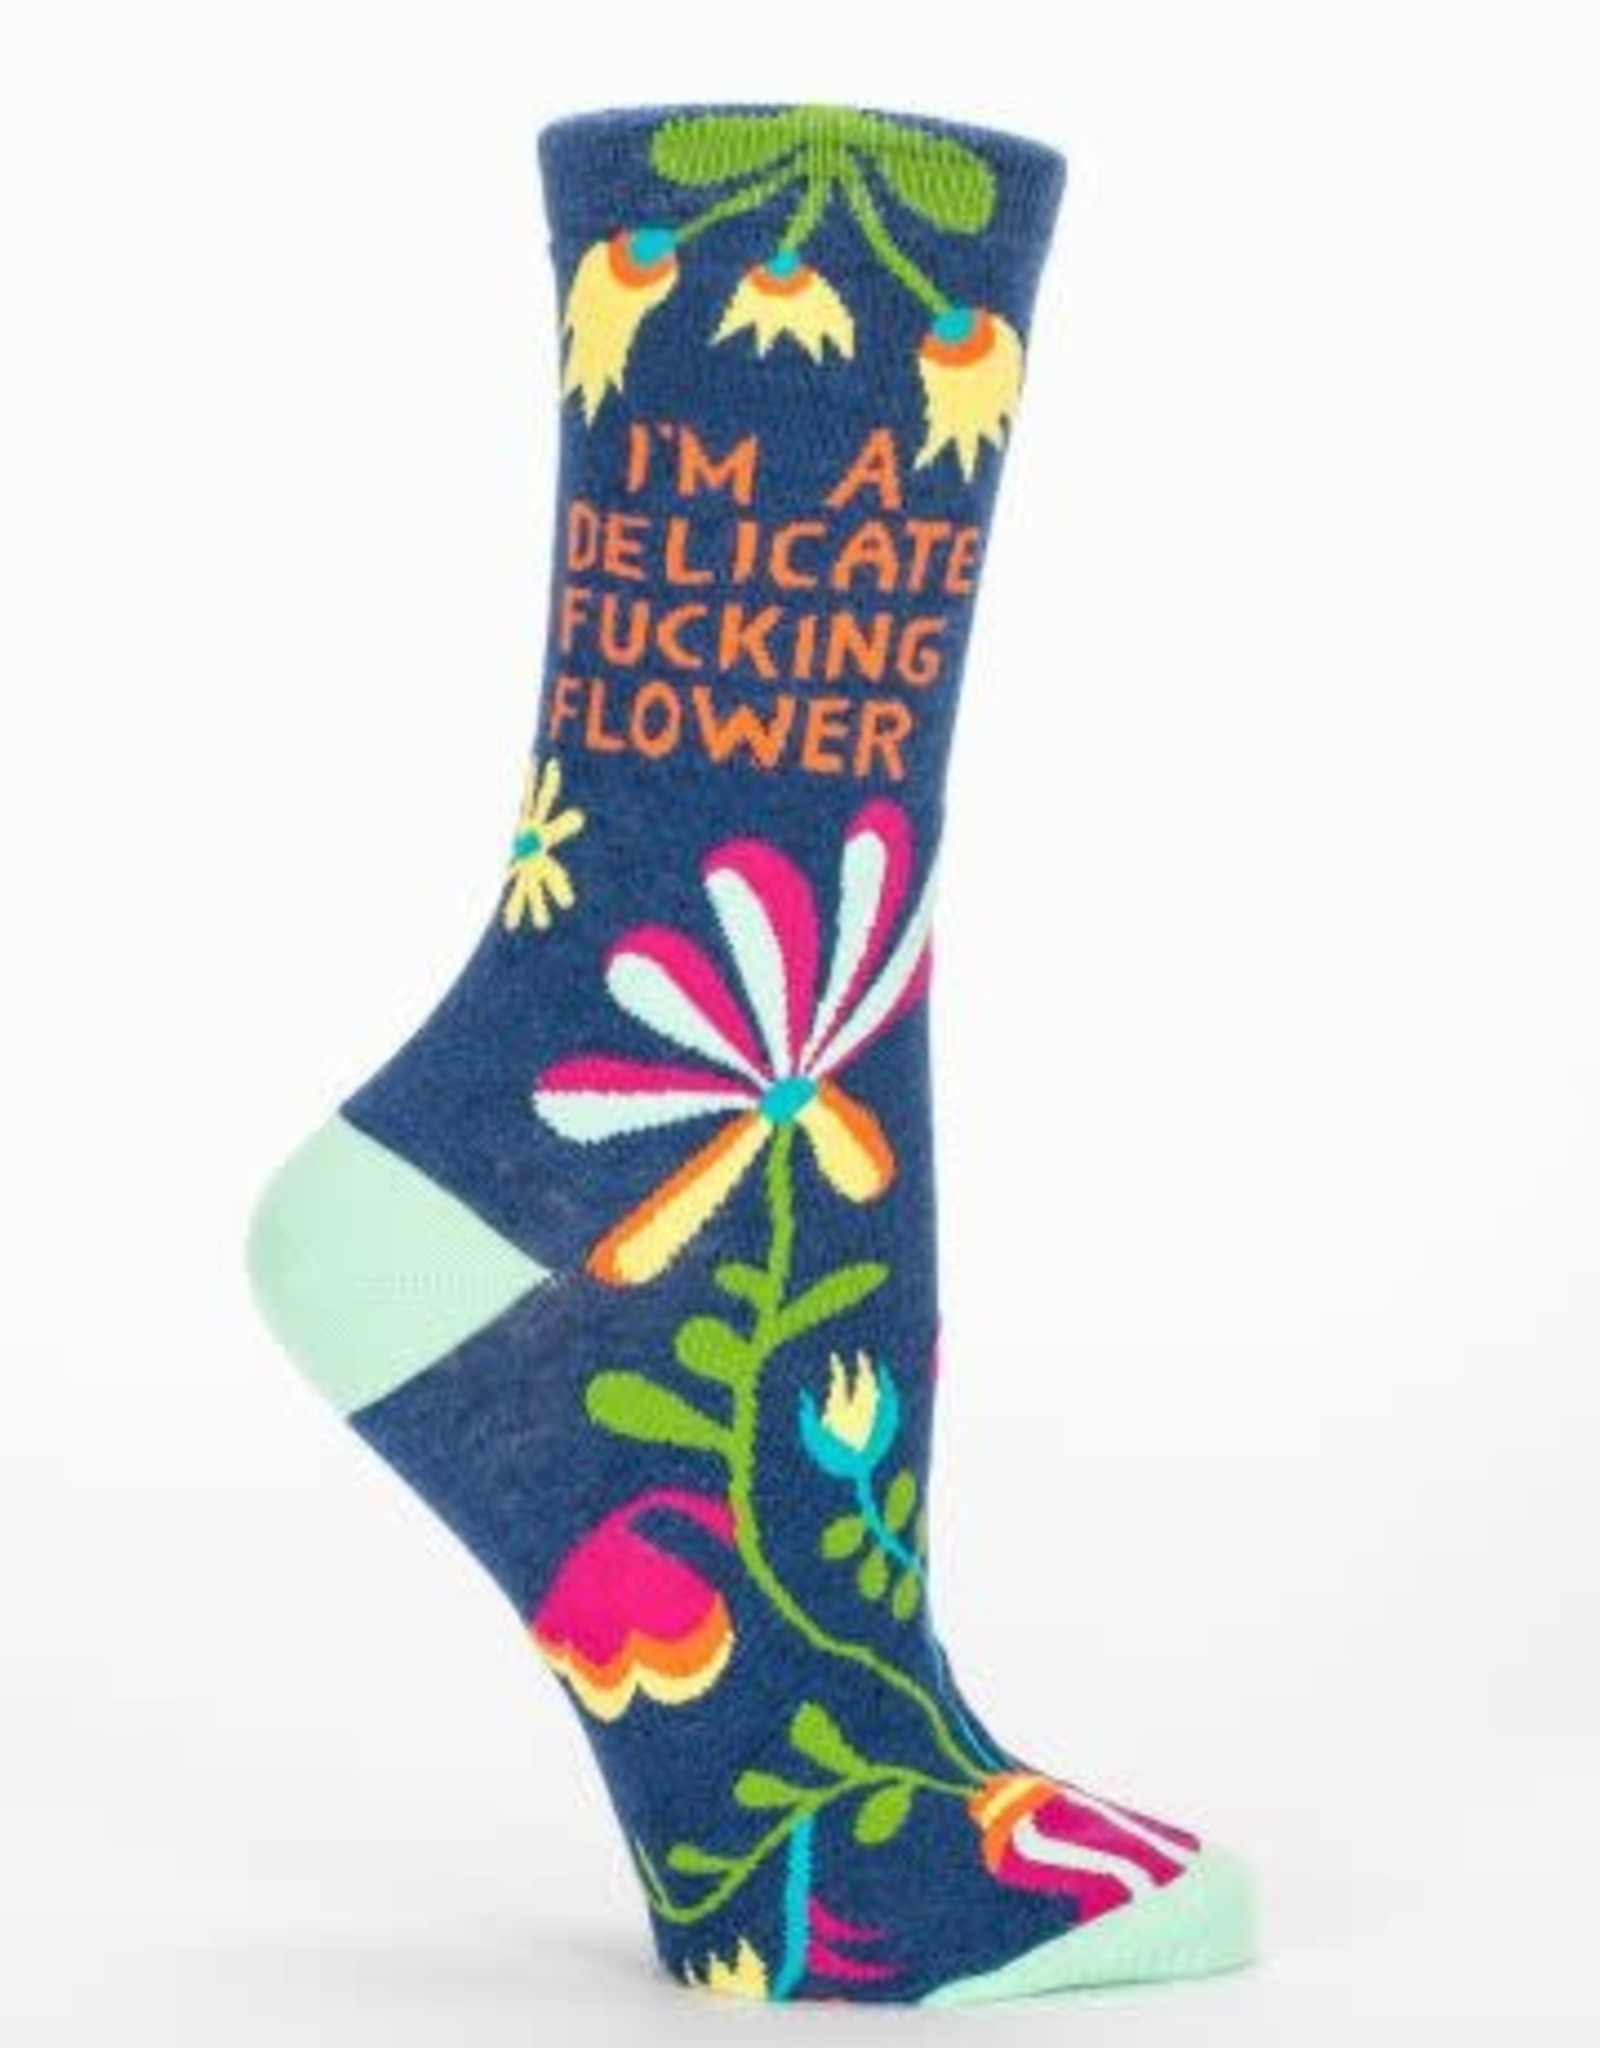 Blue Q Womens Socks - I'm a delicate Flower